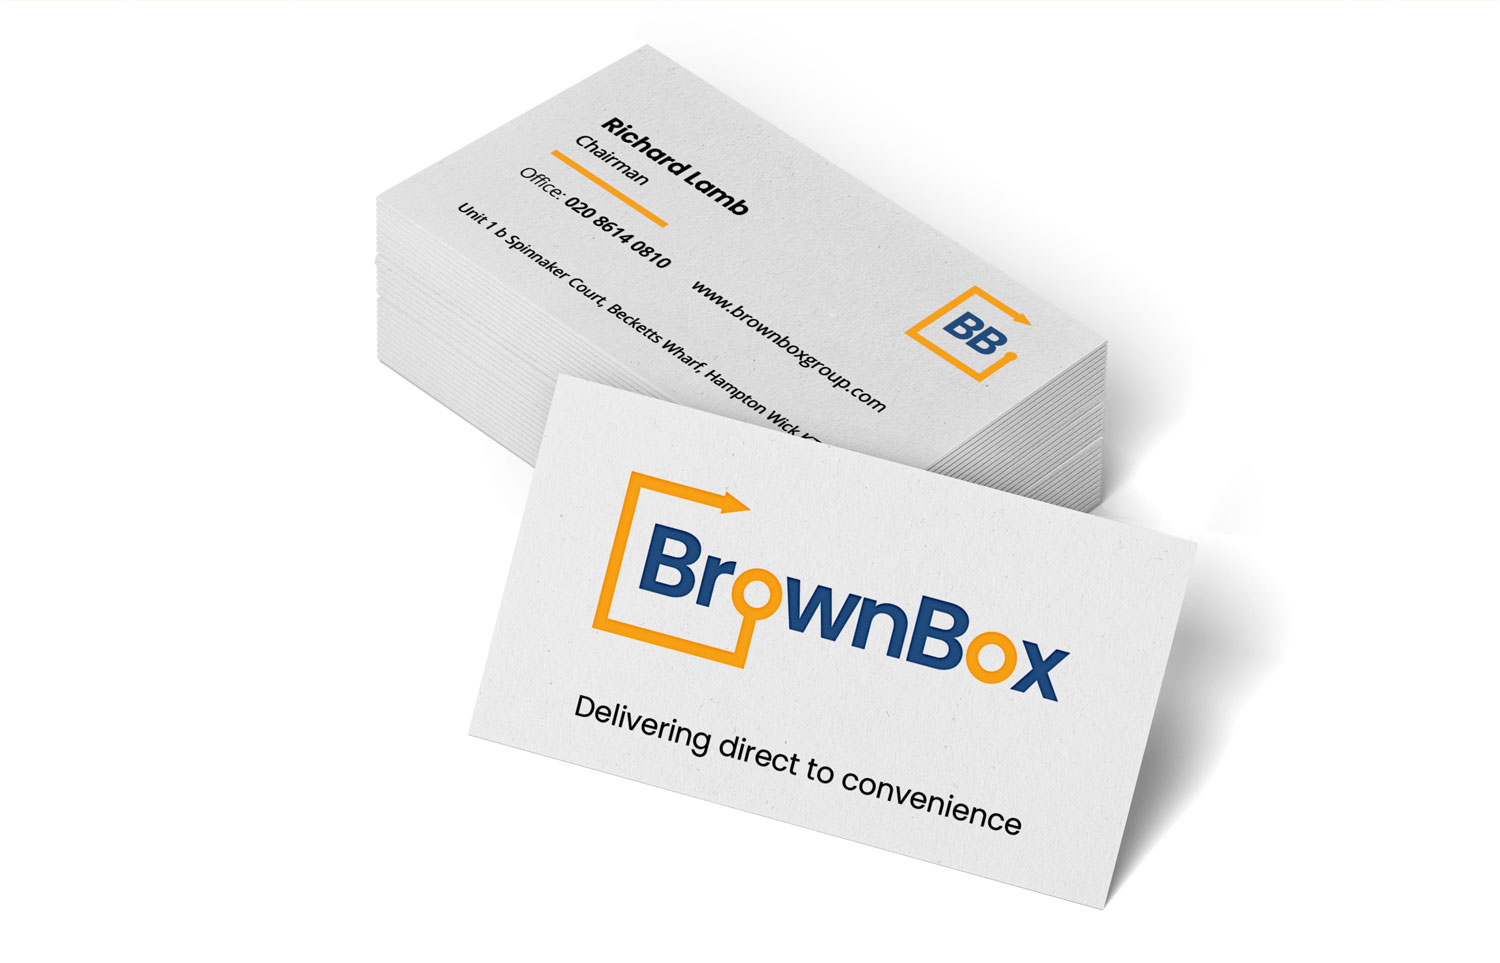 Brownbox Business cards and branding